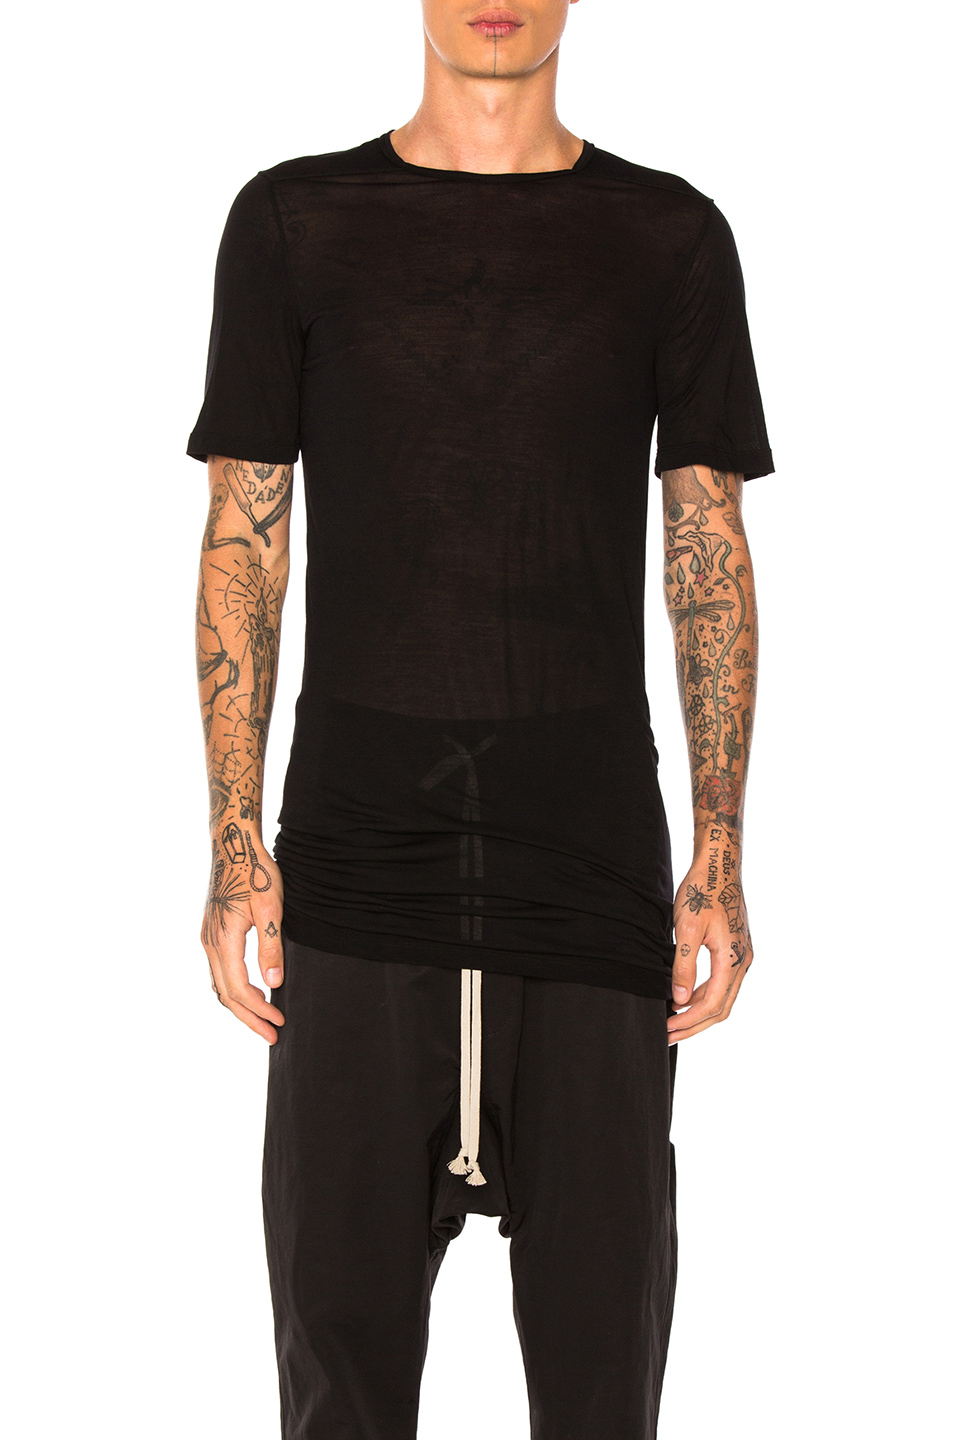 DRKSHDW by Rick Owens Level Tee in Black